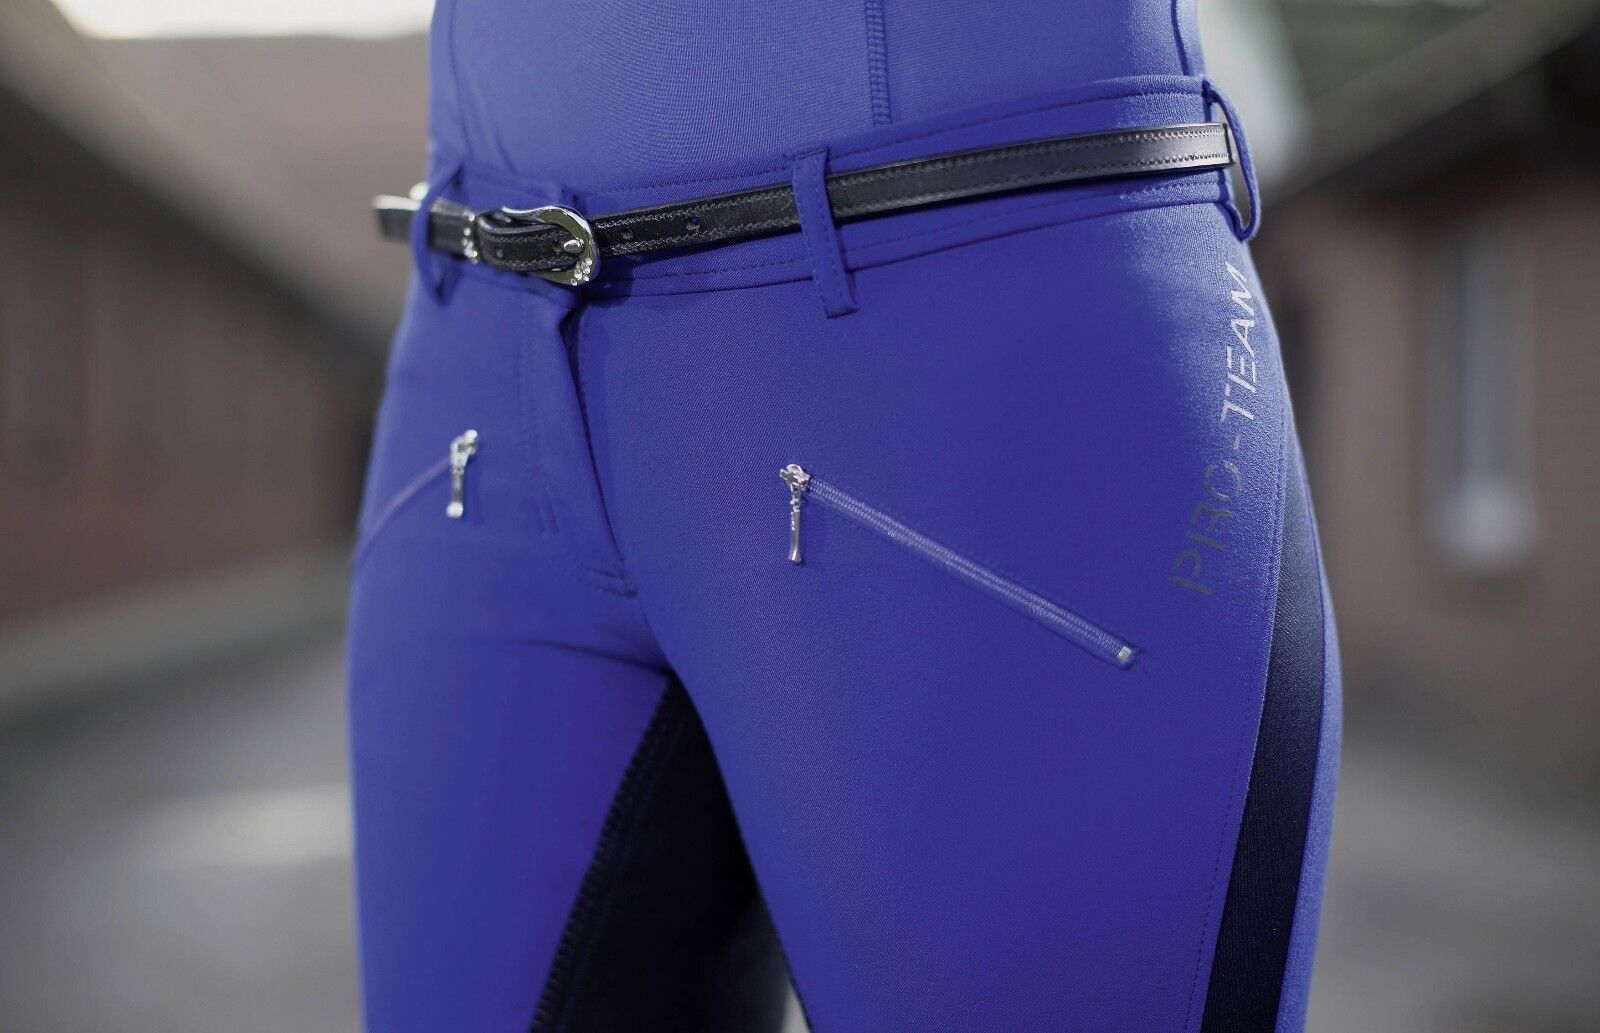 HKM PRO TEAM EQUESTRIAN HORSE RIDING BREECHES -Flash- FULL ALOS SEAT SALE